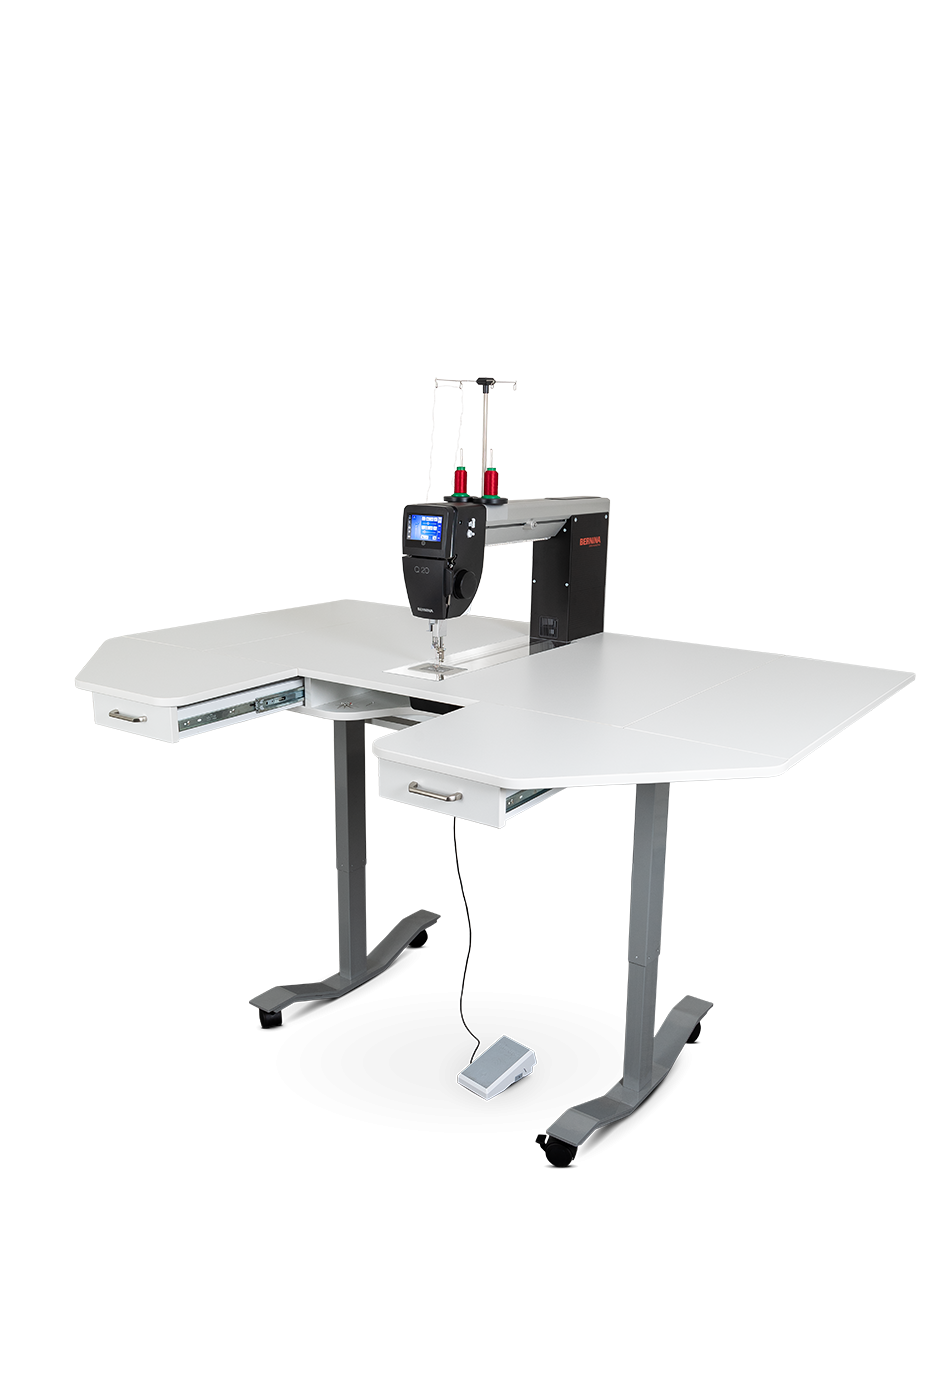 Q20 Long Arm WITH LIFT TABLE BY HORN